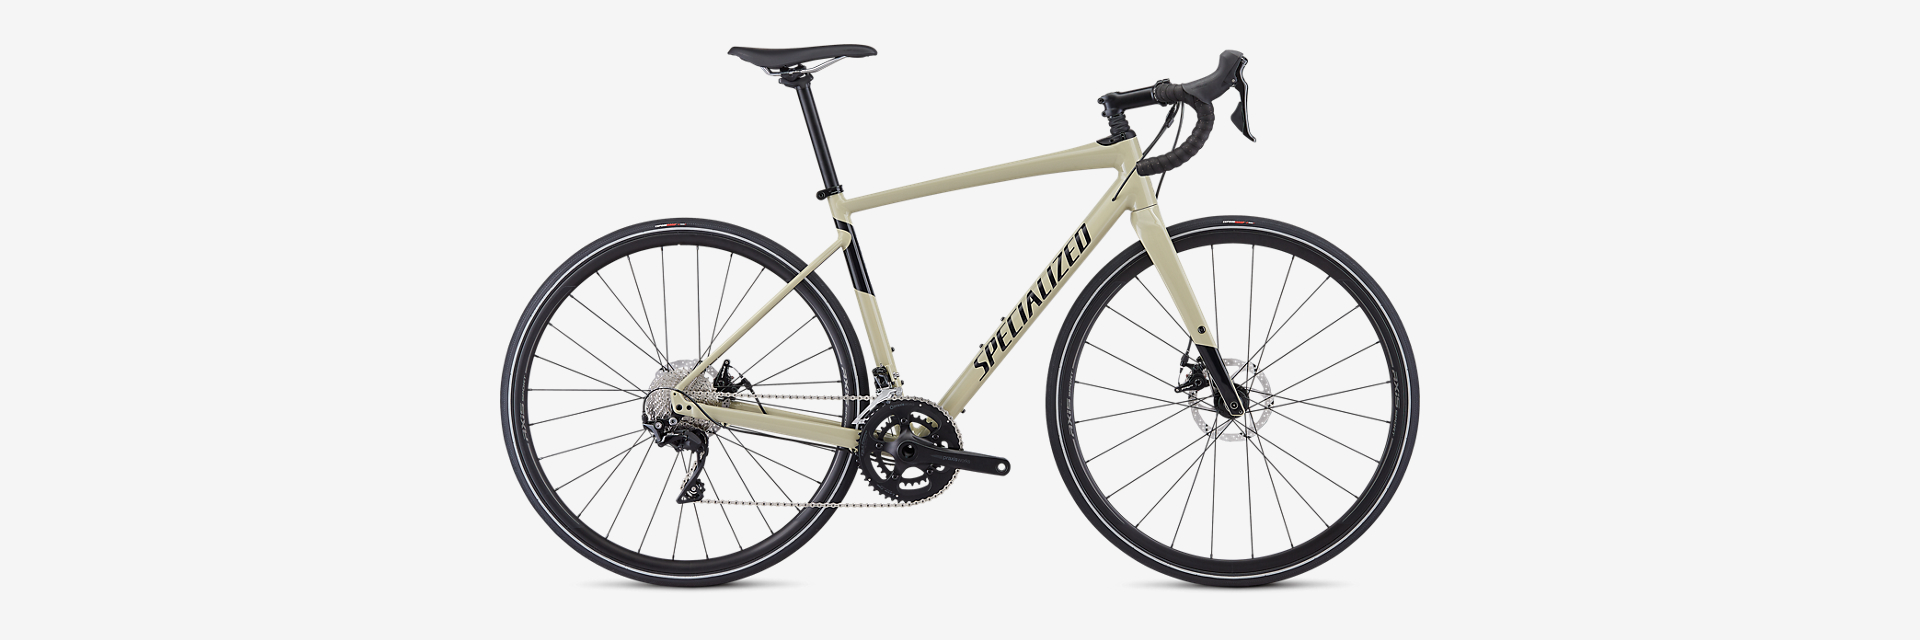 "2019 SPECIALIZED DIVERGE COMP    Type:  Road/Gravel Bike  | Size:  56cm  | Fit:  Generally fits riders with a height of 5'8"" to 5'11""  